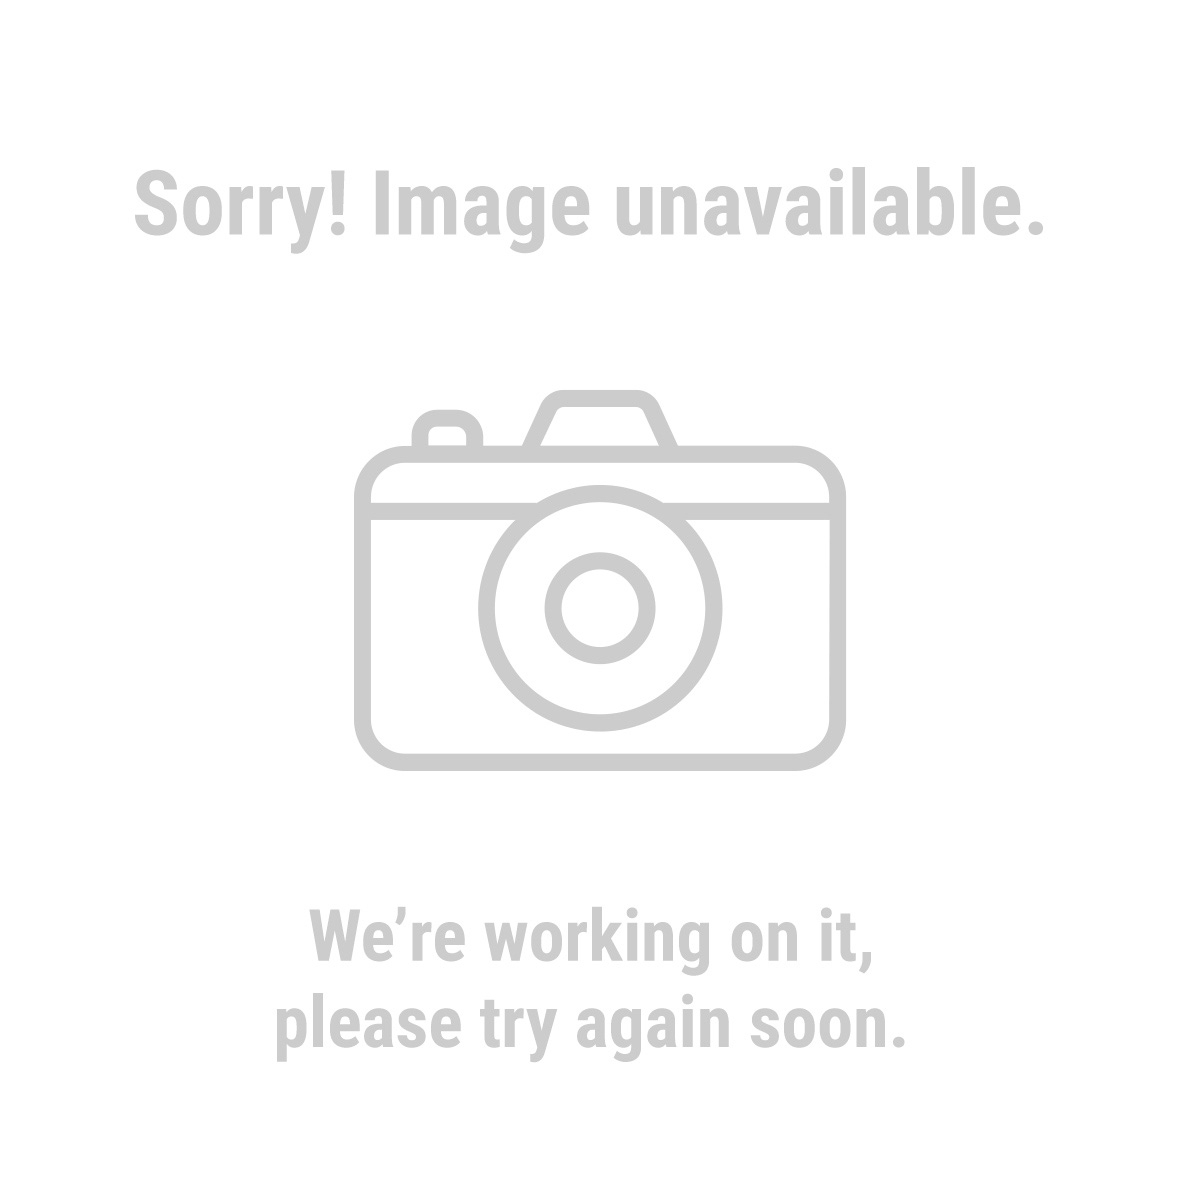 94397 16 in. x 5-1/2 in. x 5-1/2 in.  Small Animal Trap